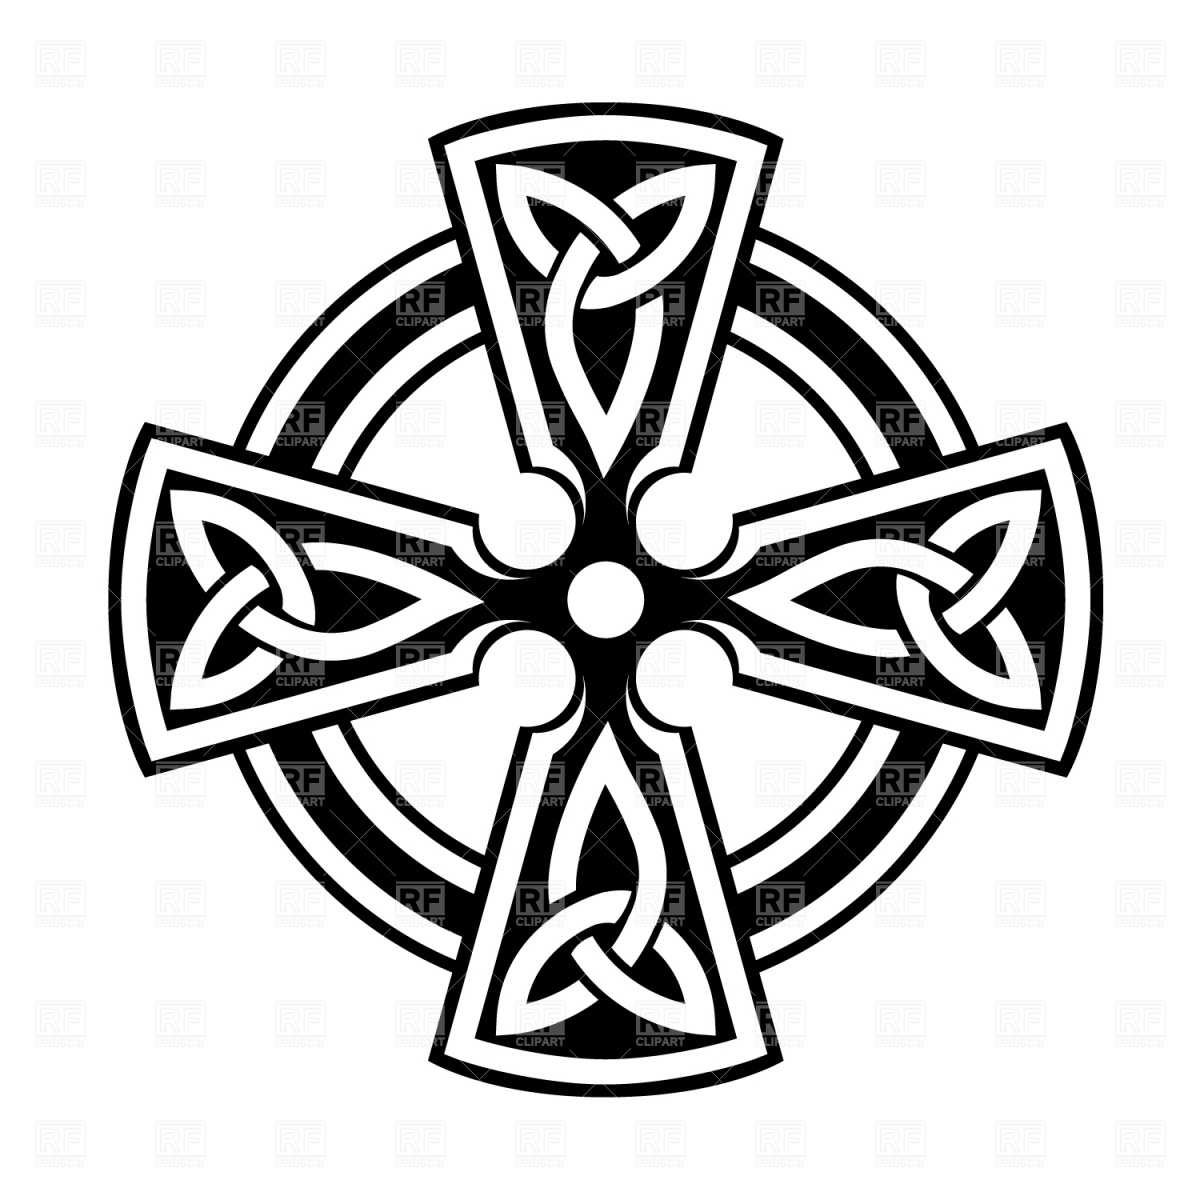 Celtic Cross Design Elements Download Royalty Free Vector Clip Art